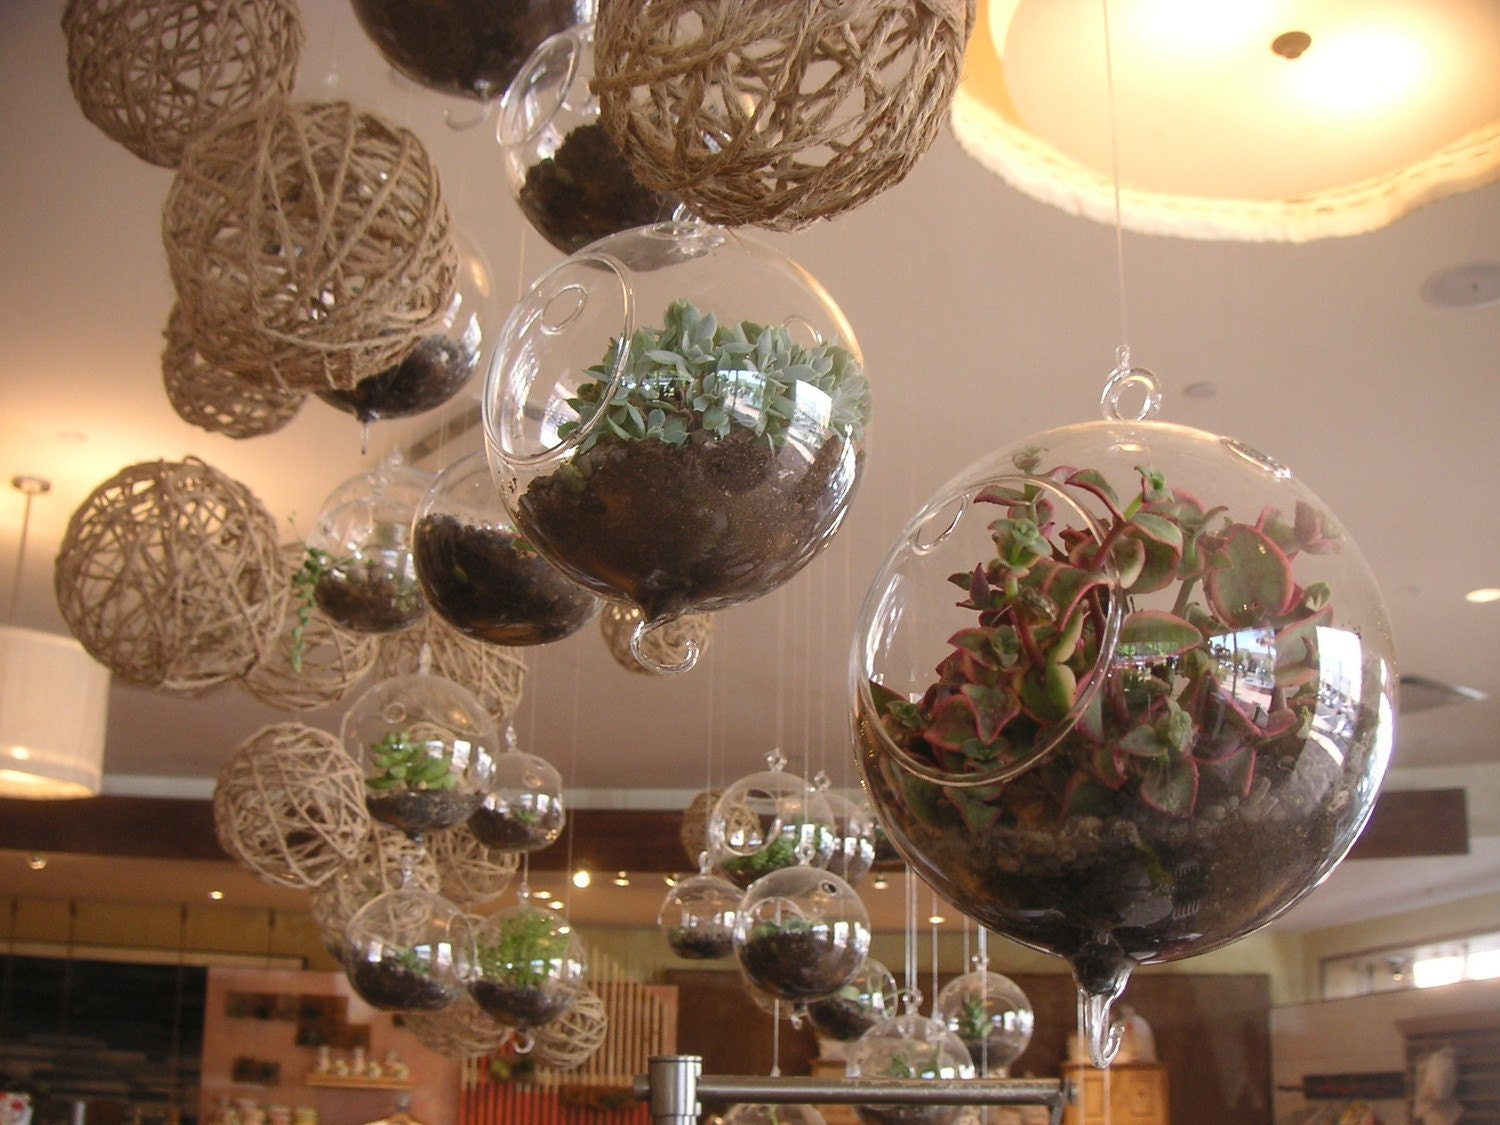 Diy succulents and glass globes for terrarium projects